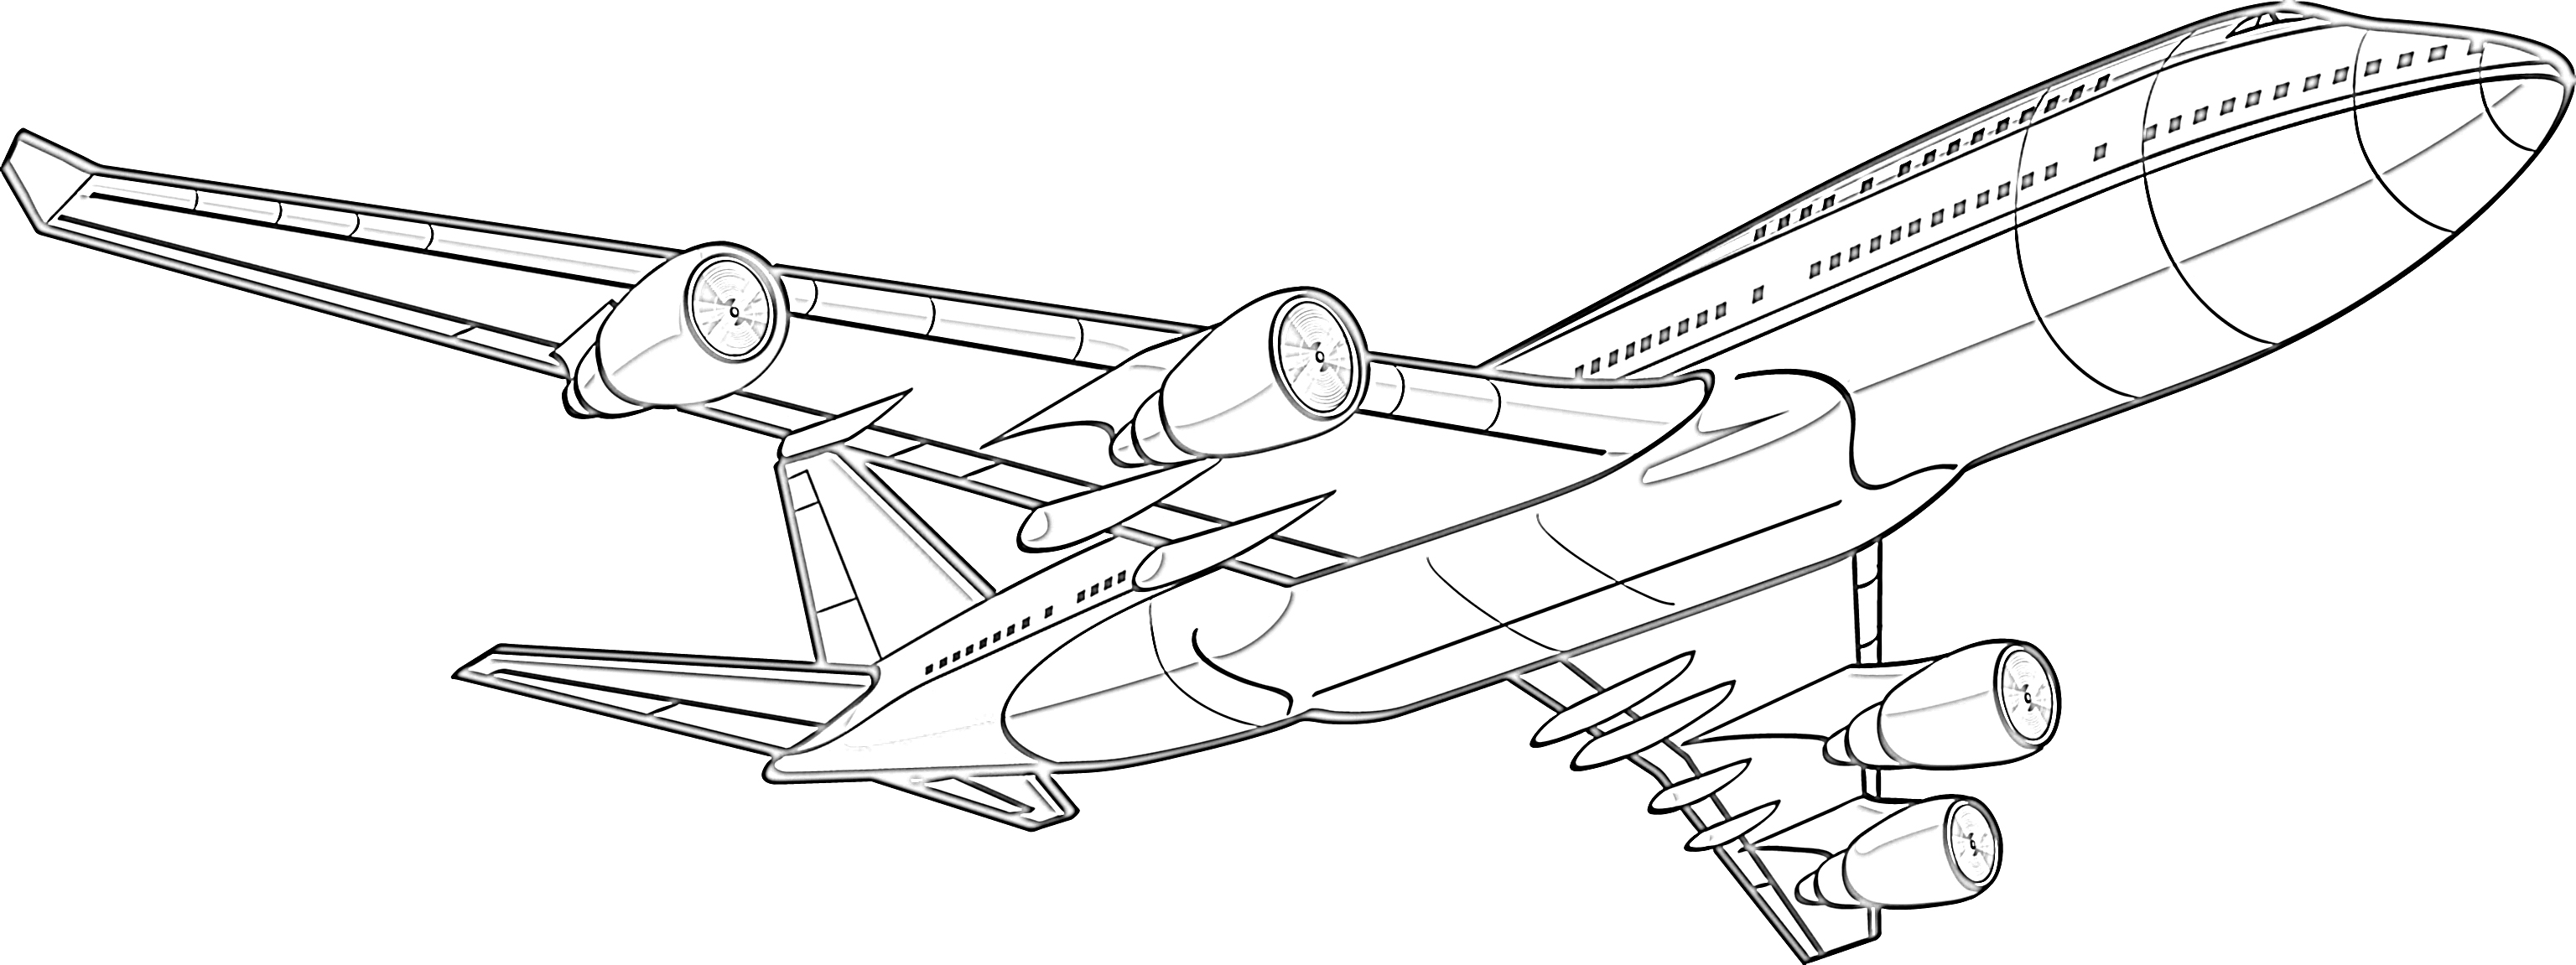 jet coloring images print download the sophisticated transportation of coloring jet images 1 1